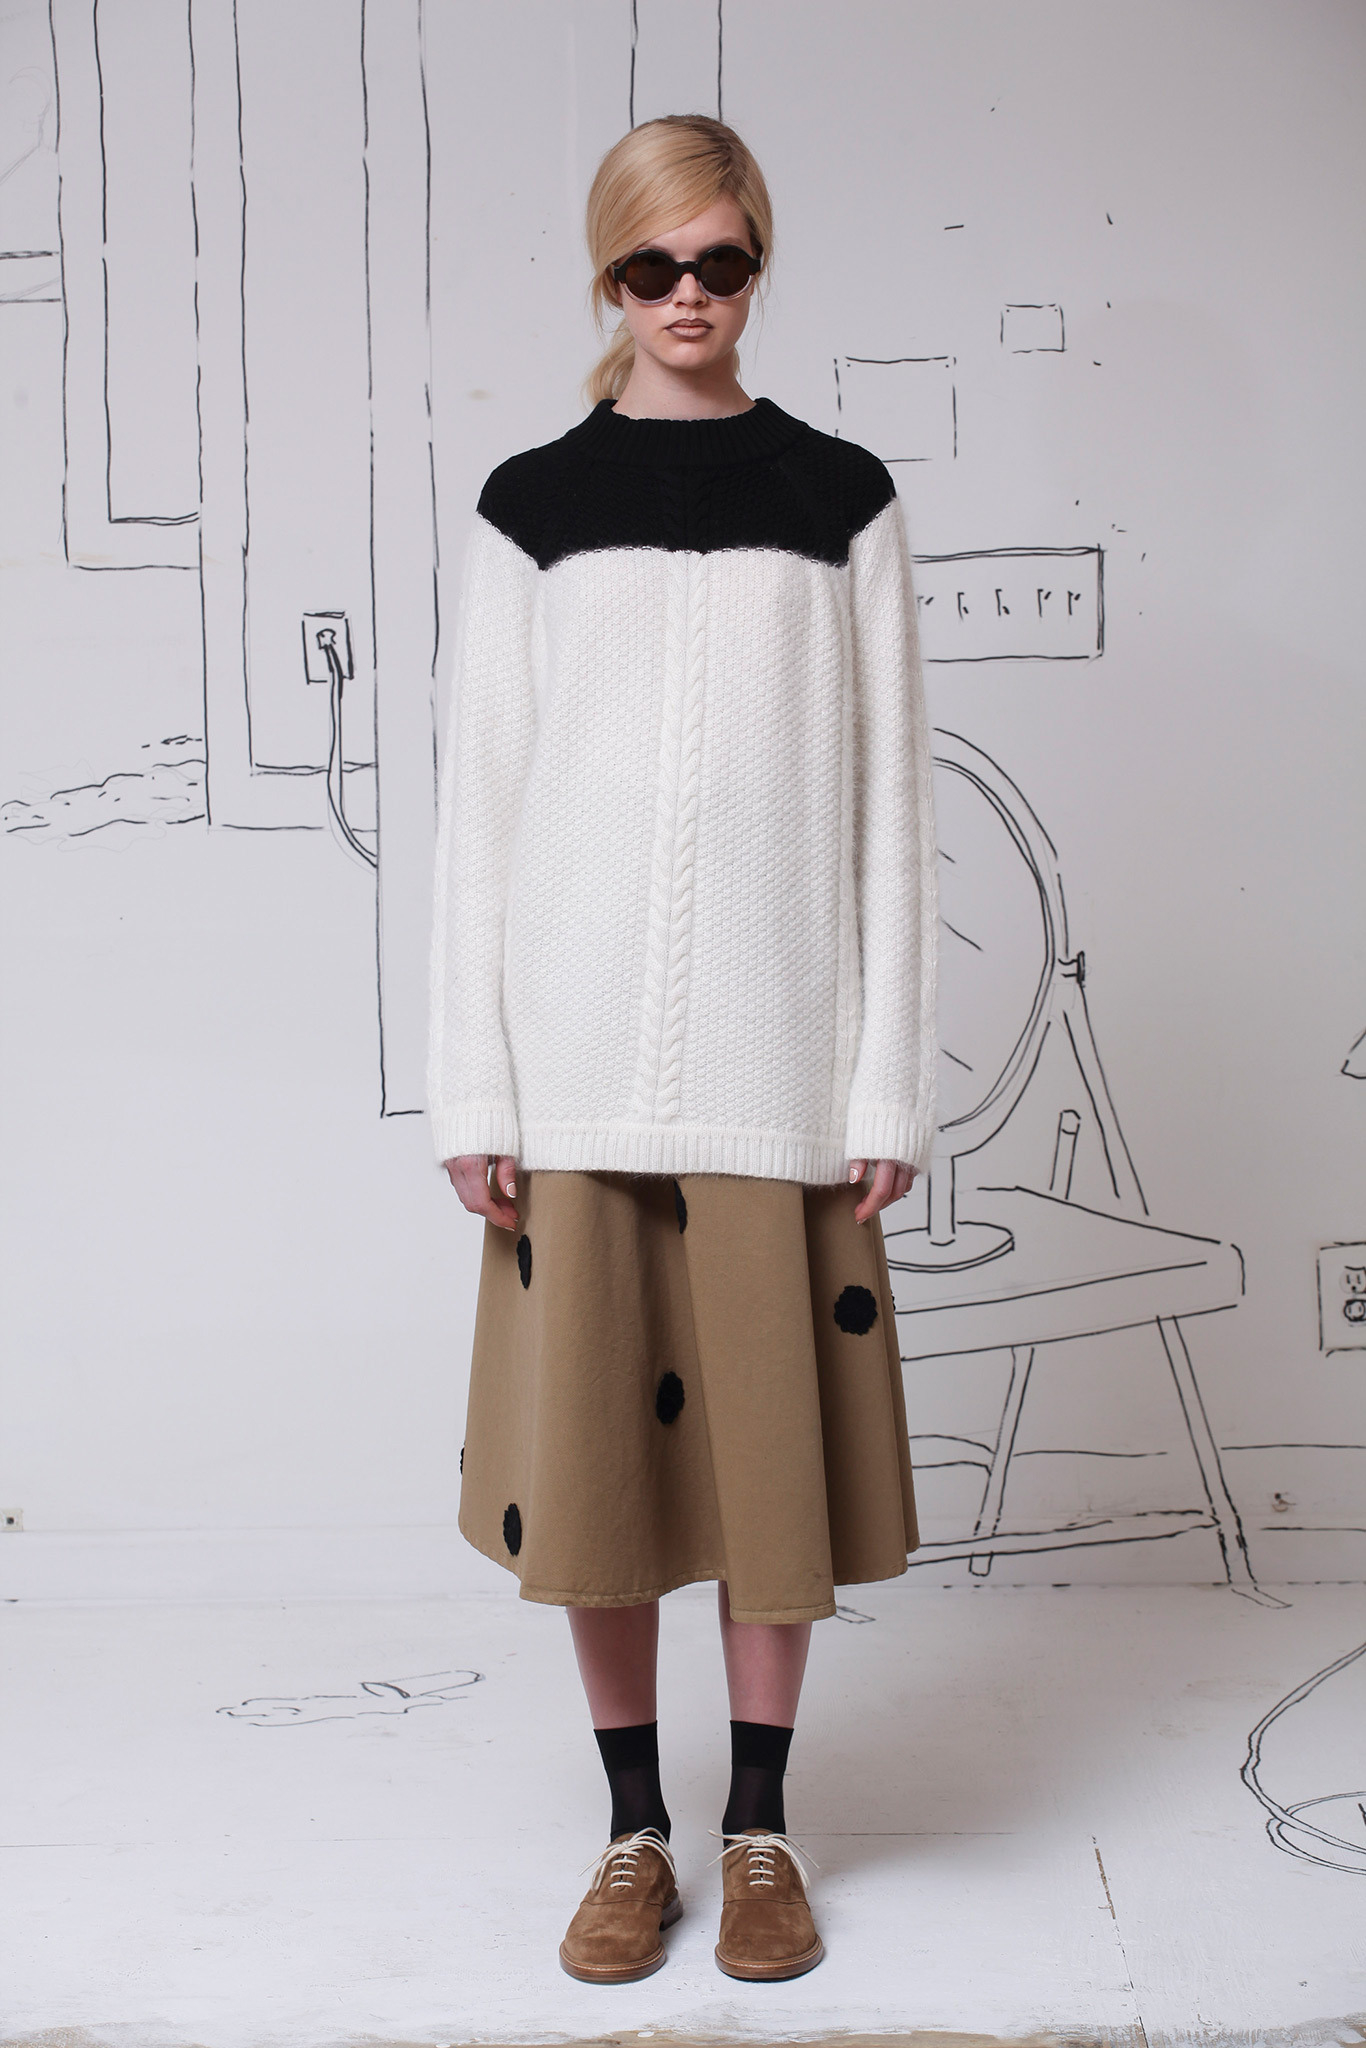 Band-of-Outsiders-Fall-Winter-2014-2015-7.jpg